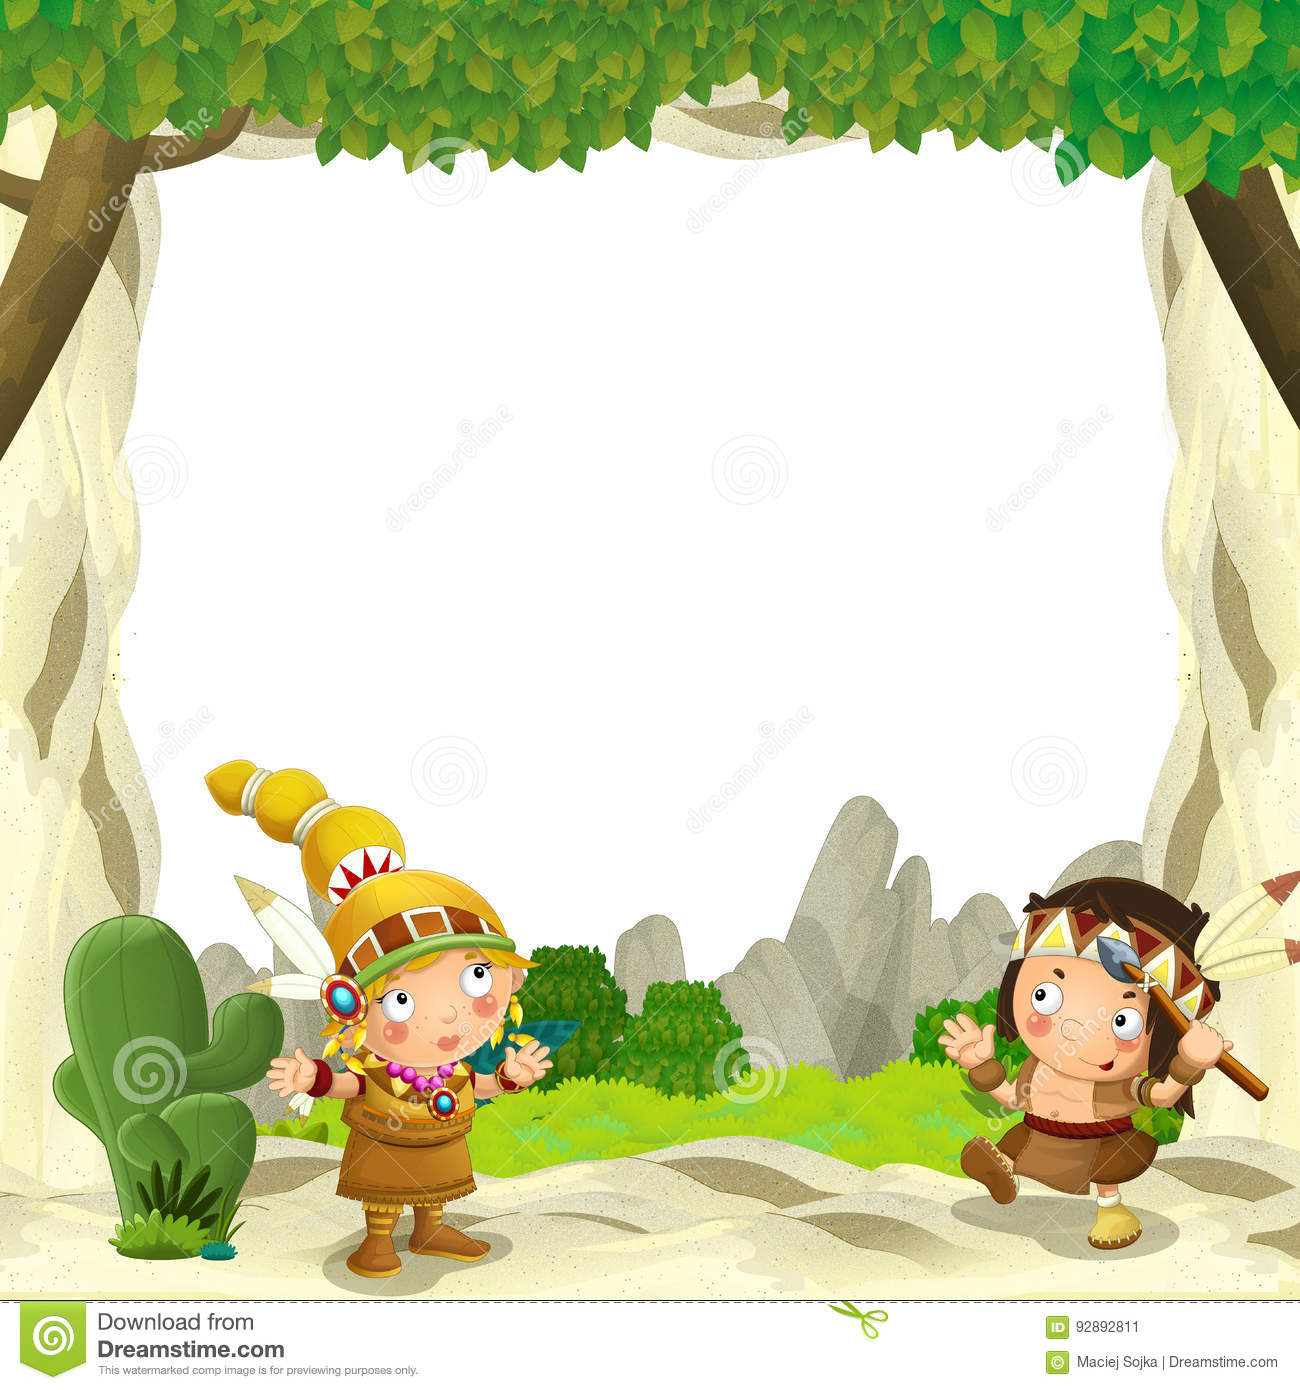 Cartoon frame for different usage indian characters husband with a spear and wife standing near the tee pee